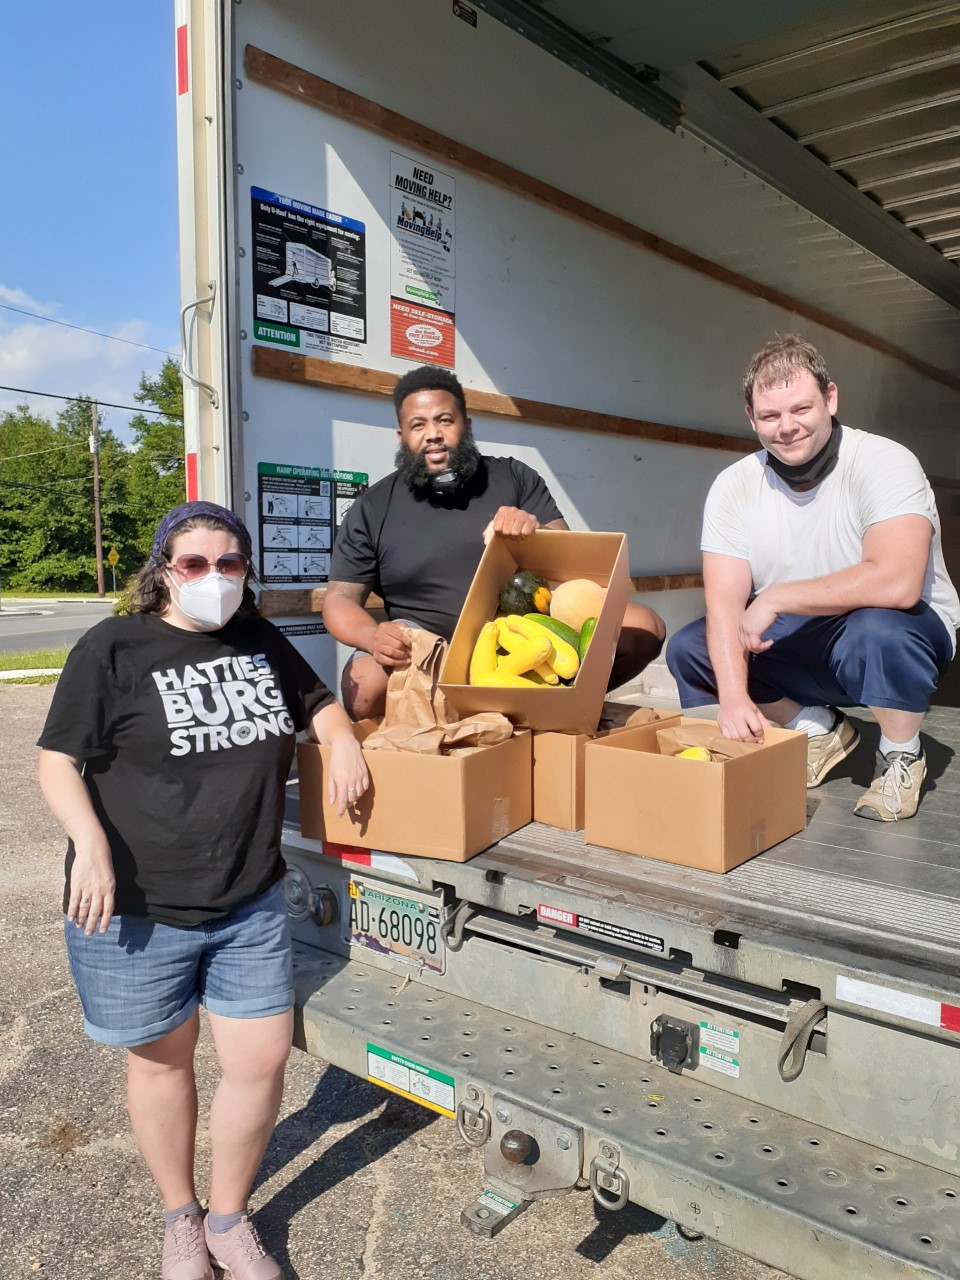 James Skinner, far right, a graduate student at USM, is helping coordinate a food relief effort in South Mississippi, along with other volunteers, to aid residents and their families adversely affected by the COVID-19 pandemic (Submitted photo)